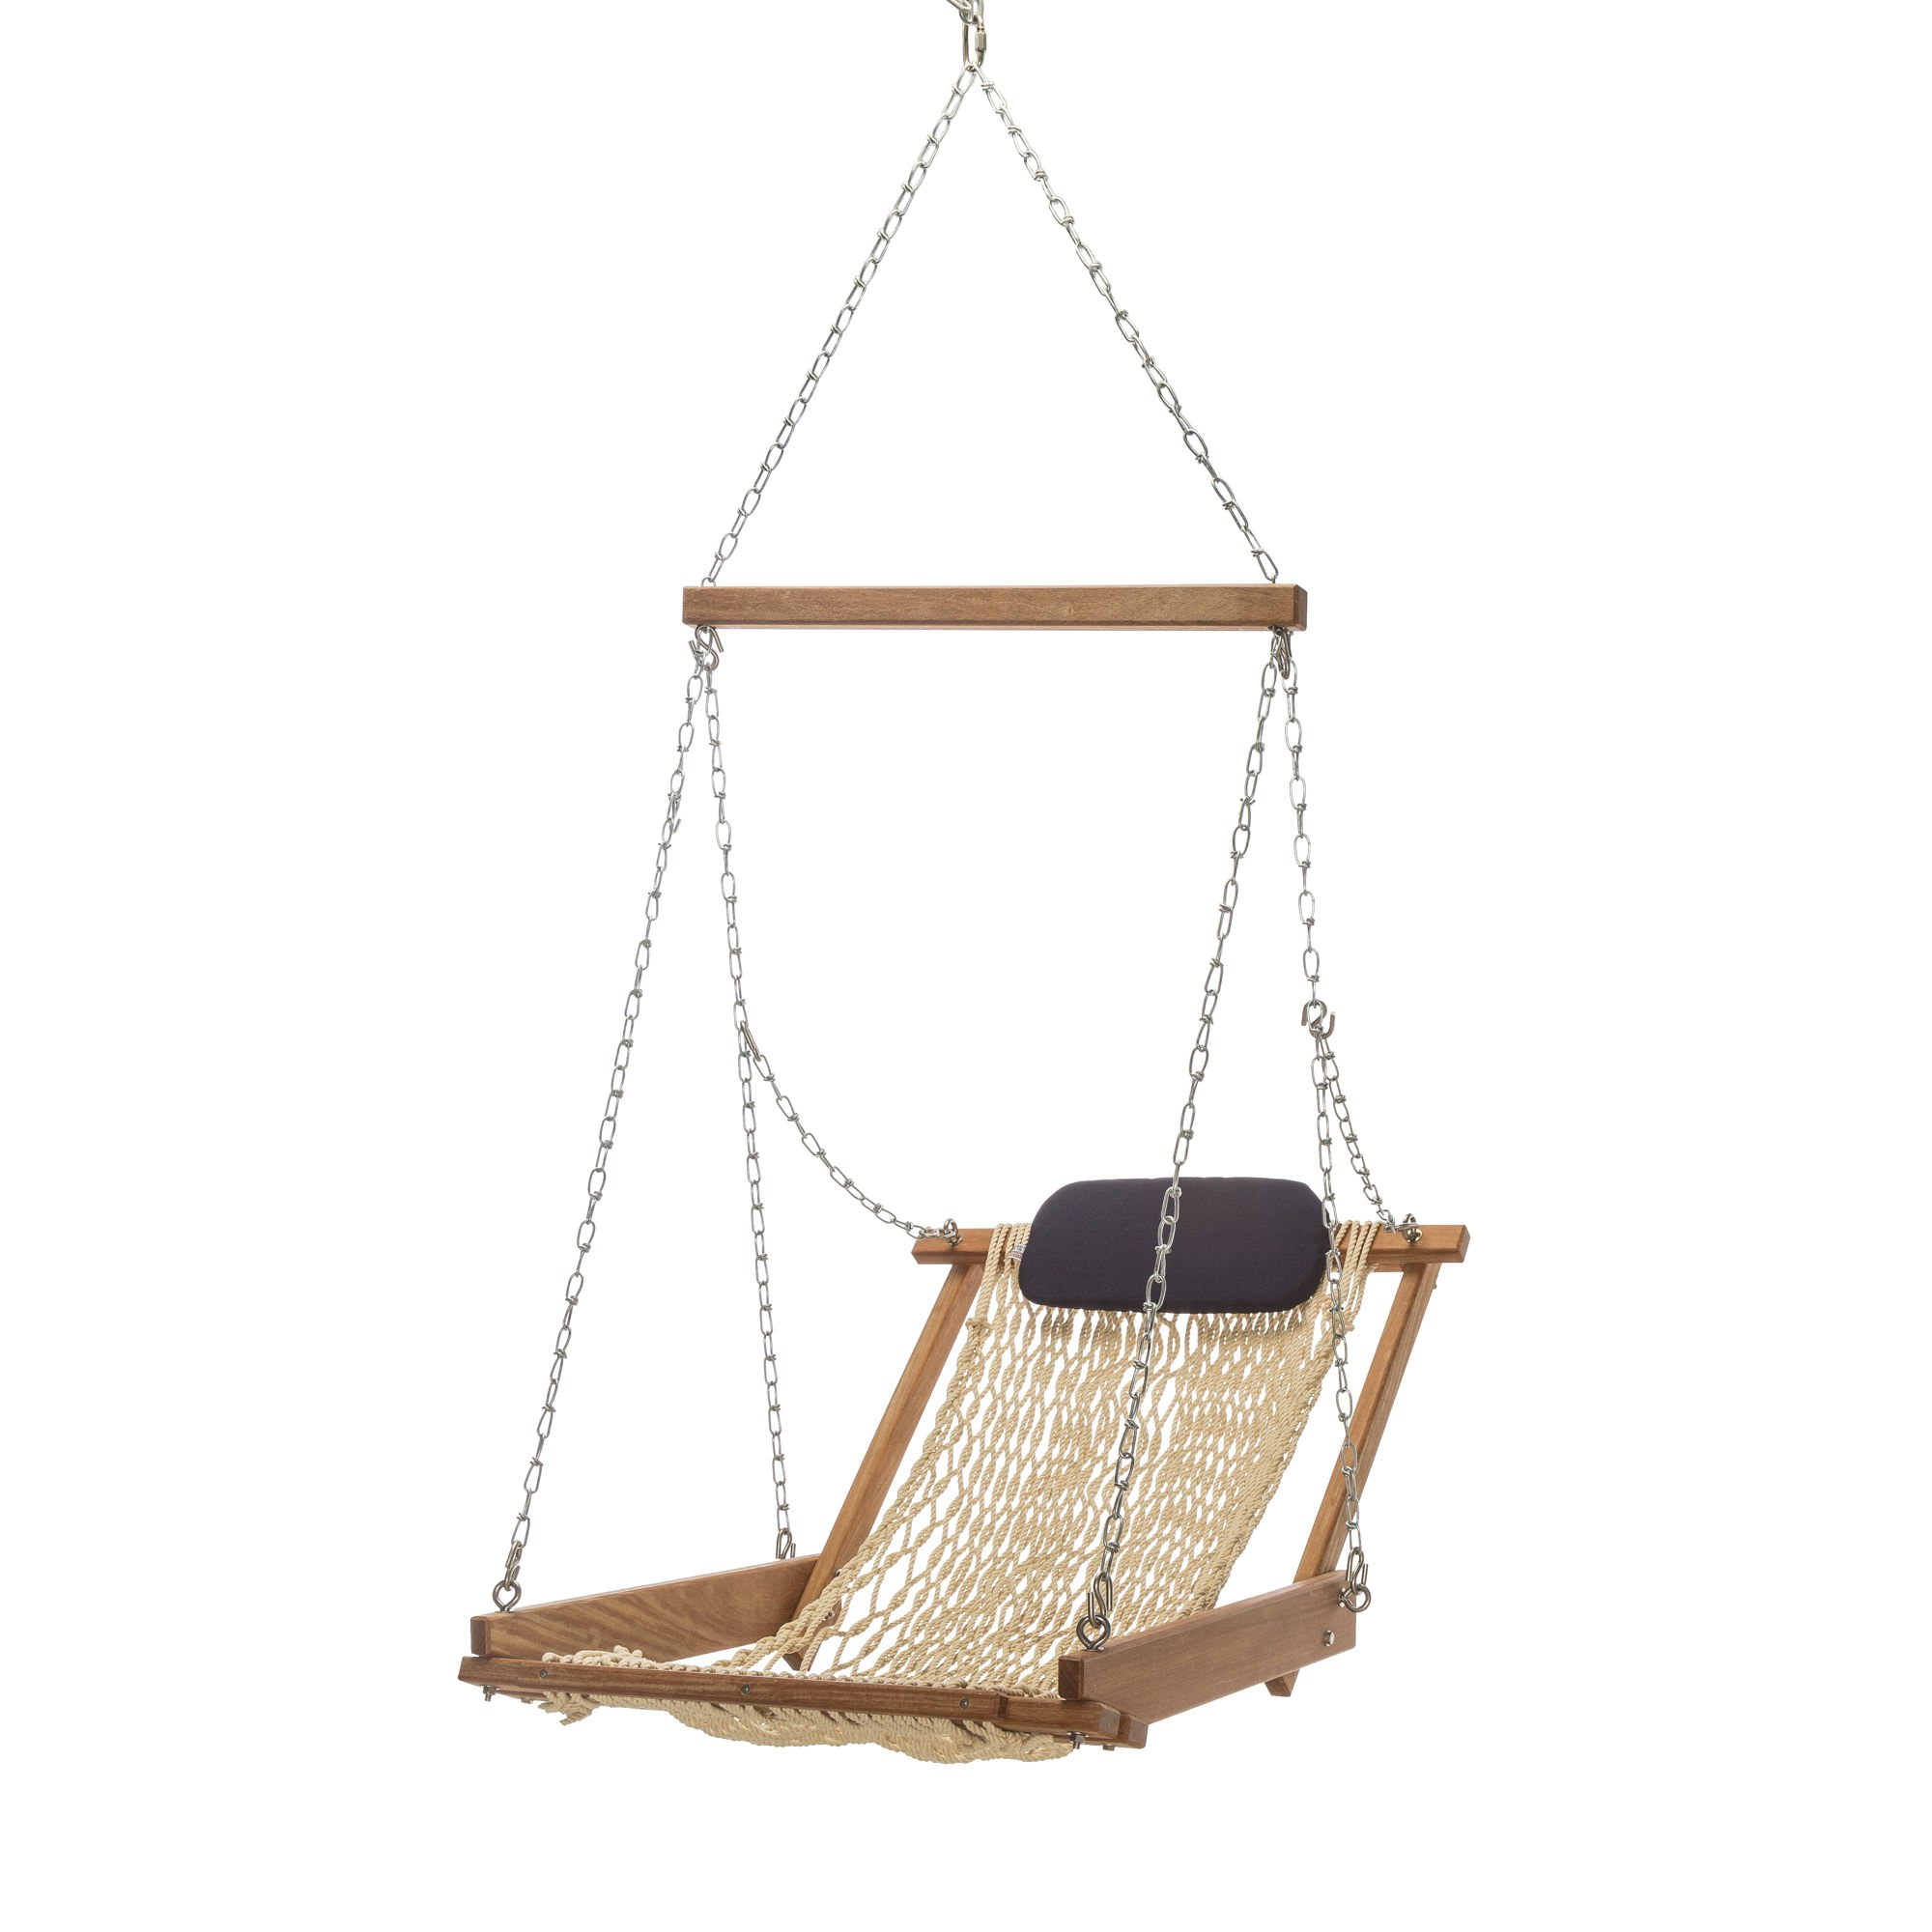 patio swing deluxe cup rope wood outdoor hammocks chair hardware oversized double arc with garden lazydaze padded holder capacity cotton hanging footrest seat pin hammock